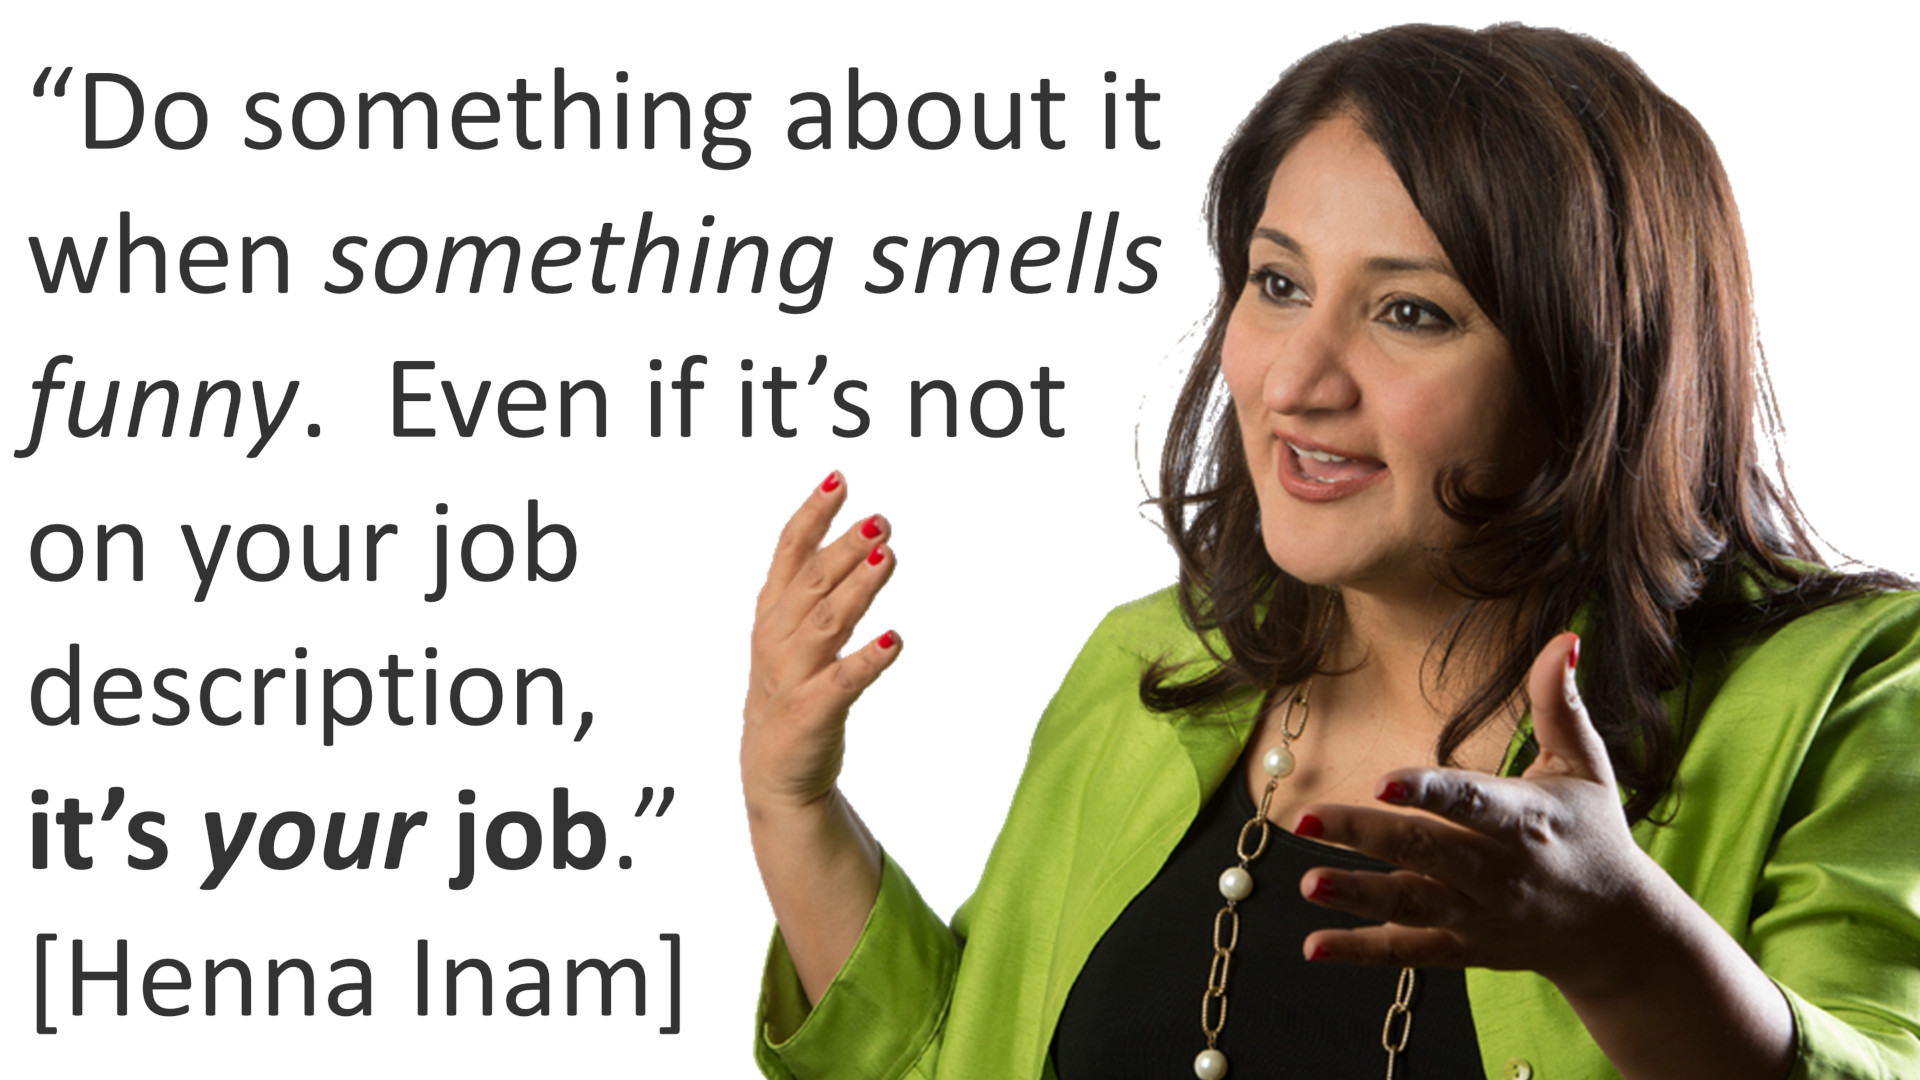 Do something about it when something smells funny. Even if it's not on your job description, it's your job.